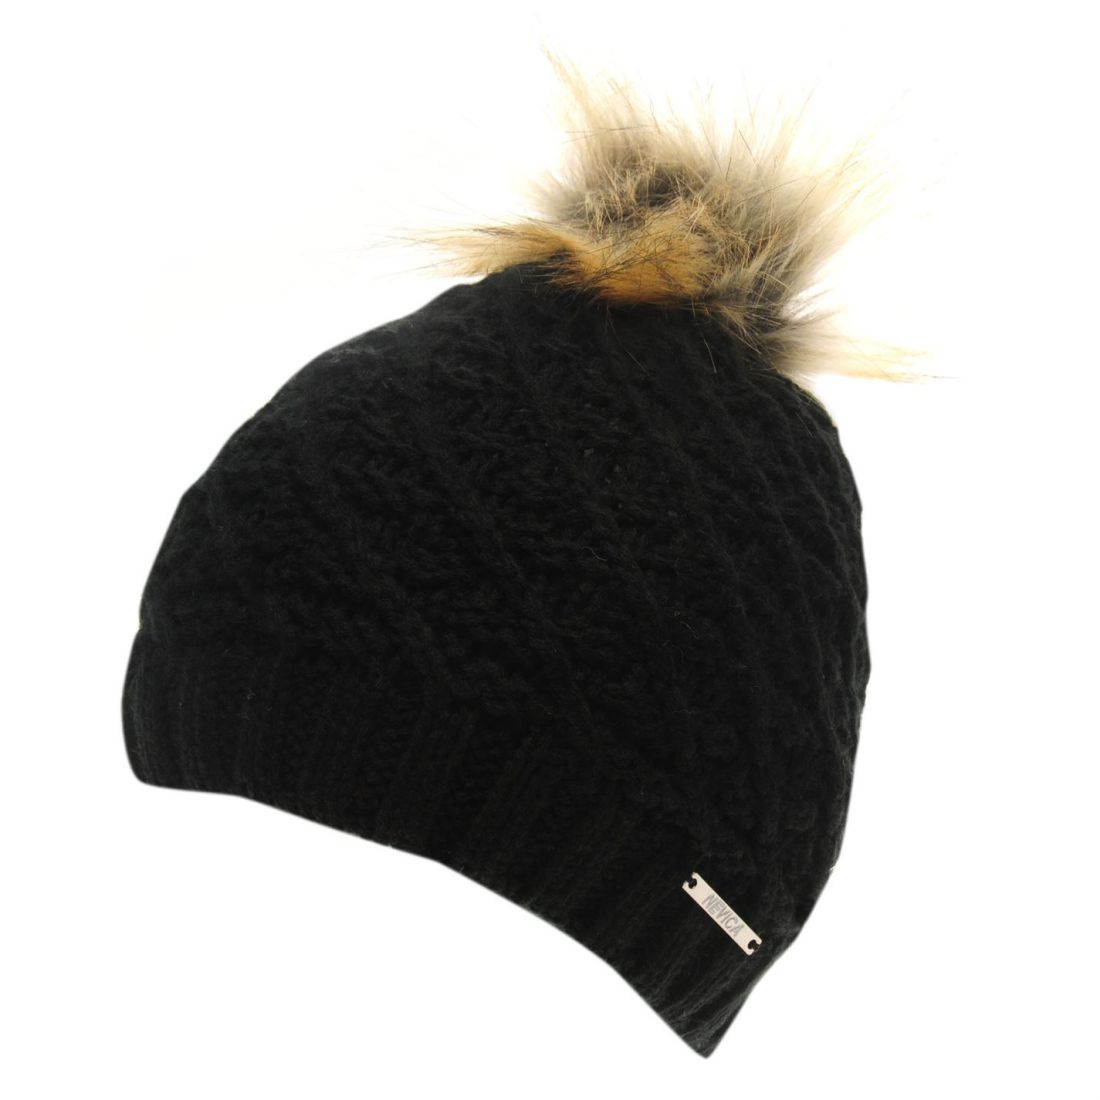 8c16e2f1a Details about Nevica Womens Vail Beanie Ski Hat Pattern Warm Faux Fur  Knitted